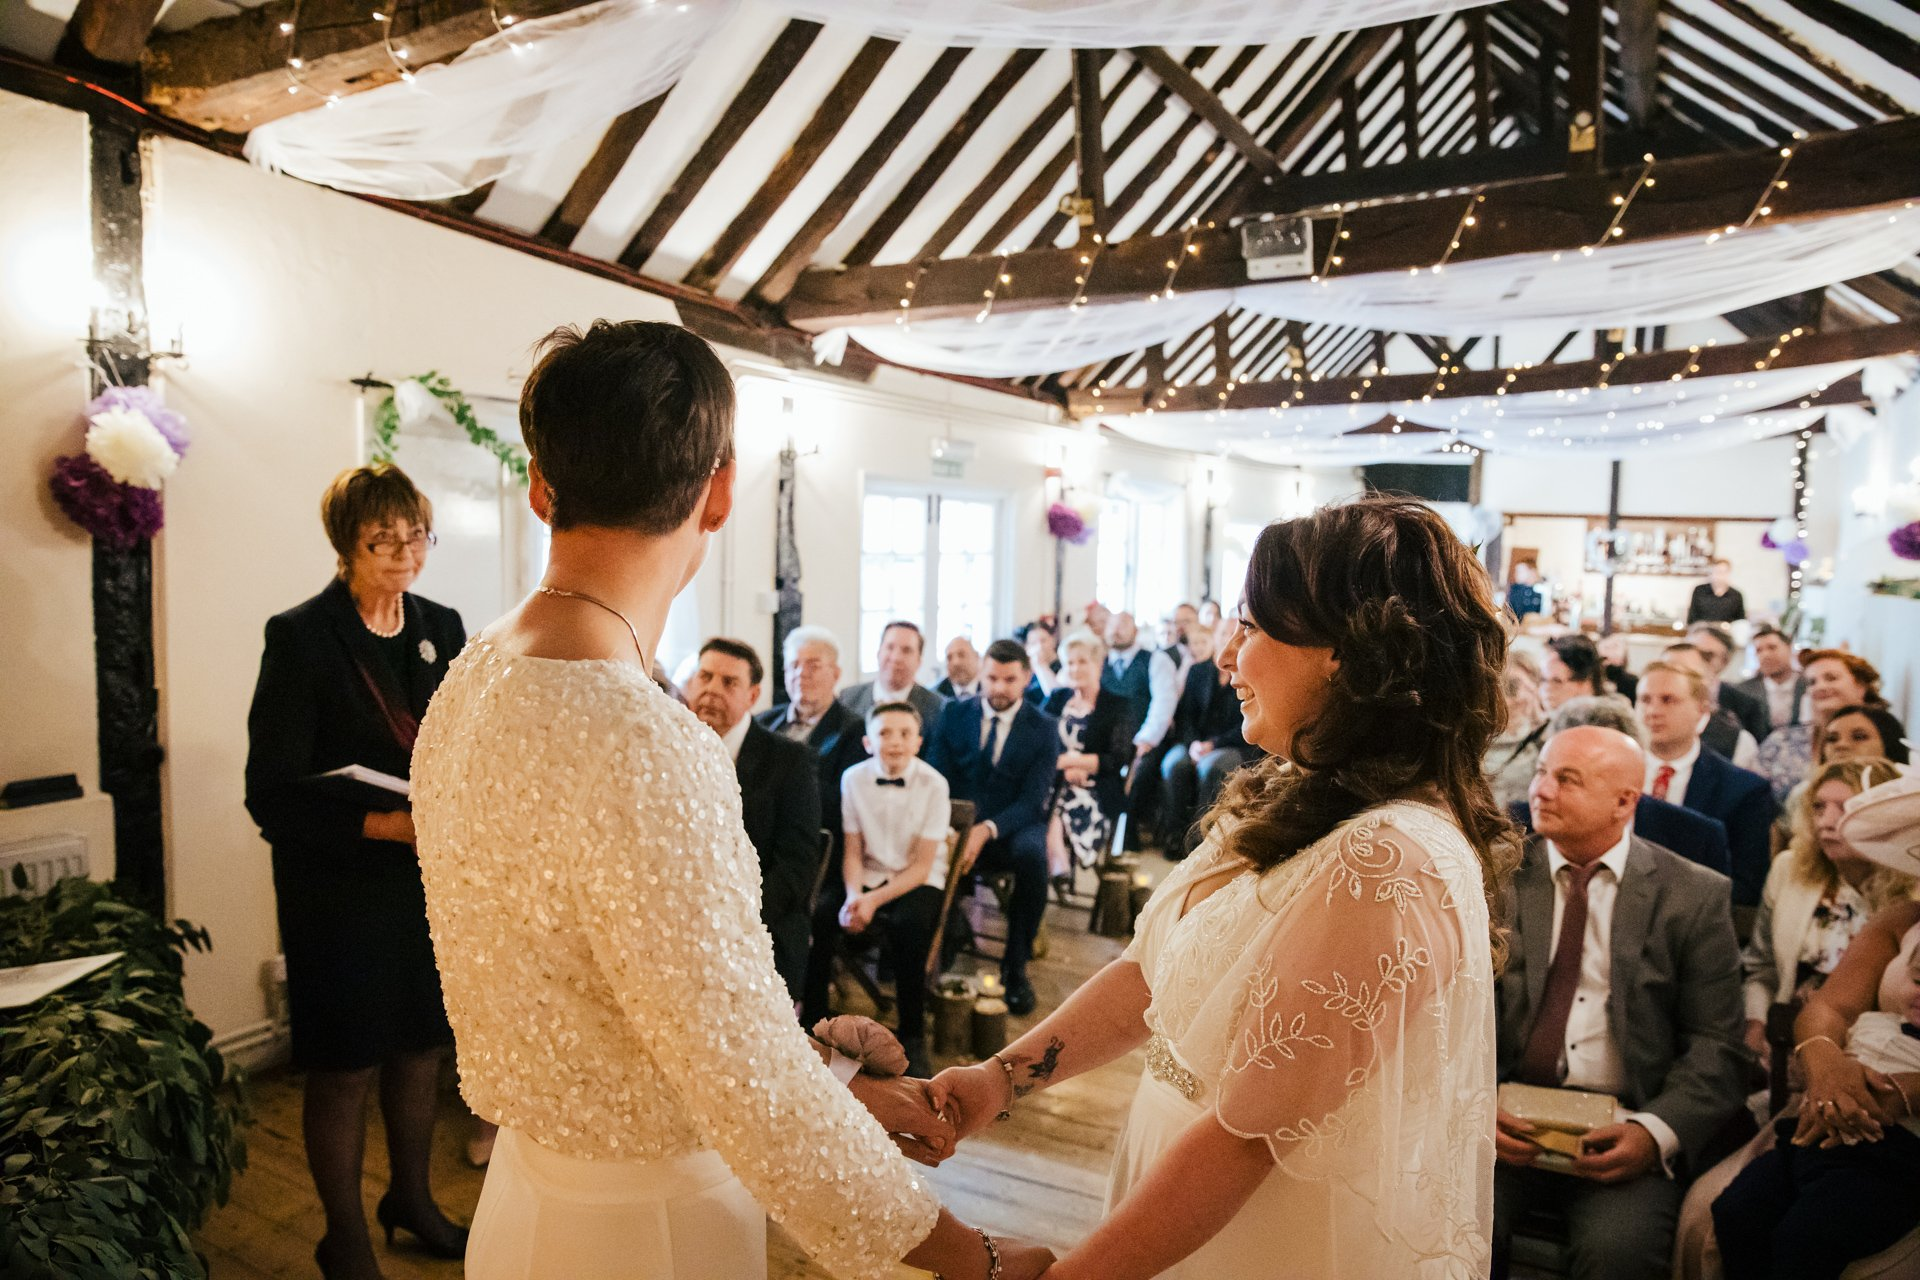 Two Brides holding hands together infant of their guests in their wedding ceremony at The Bull Hotel, Kent